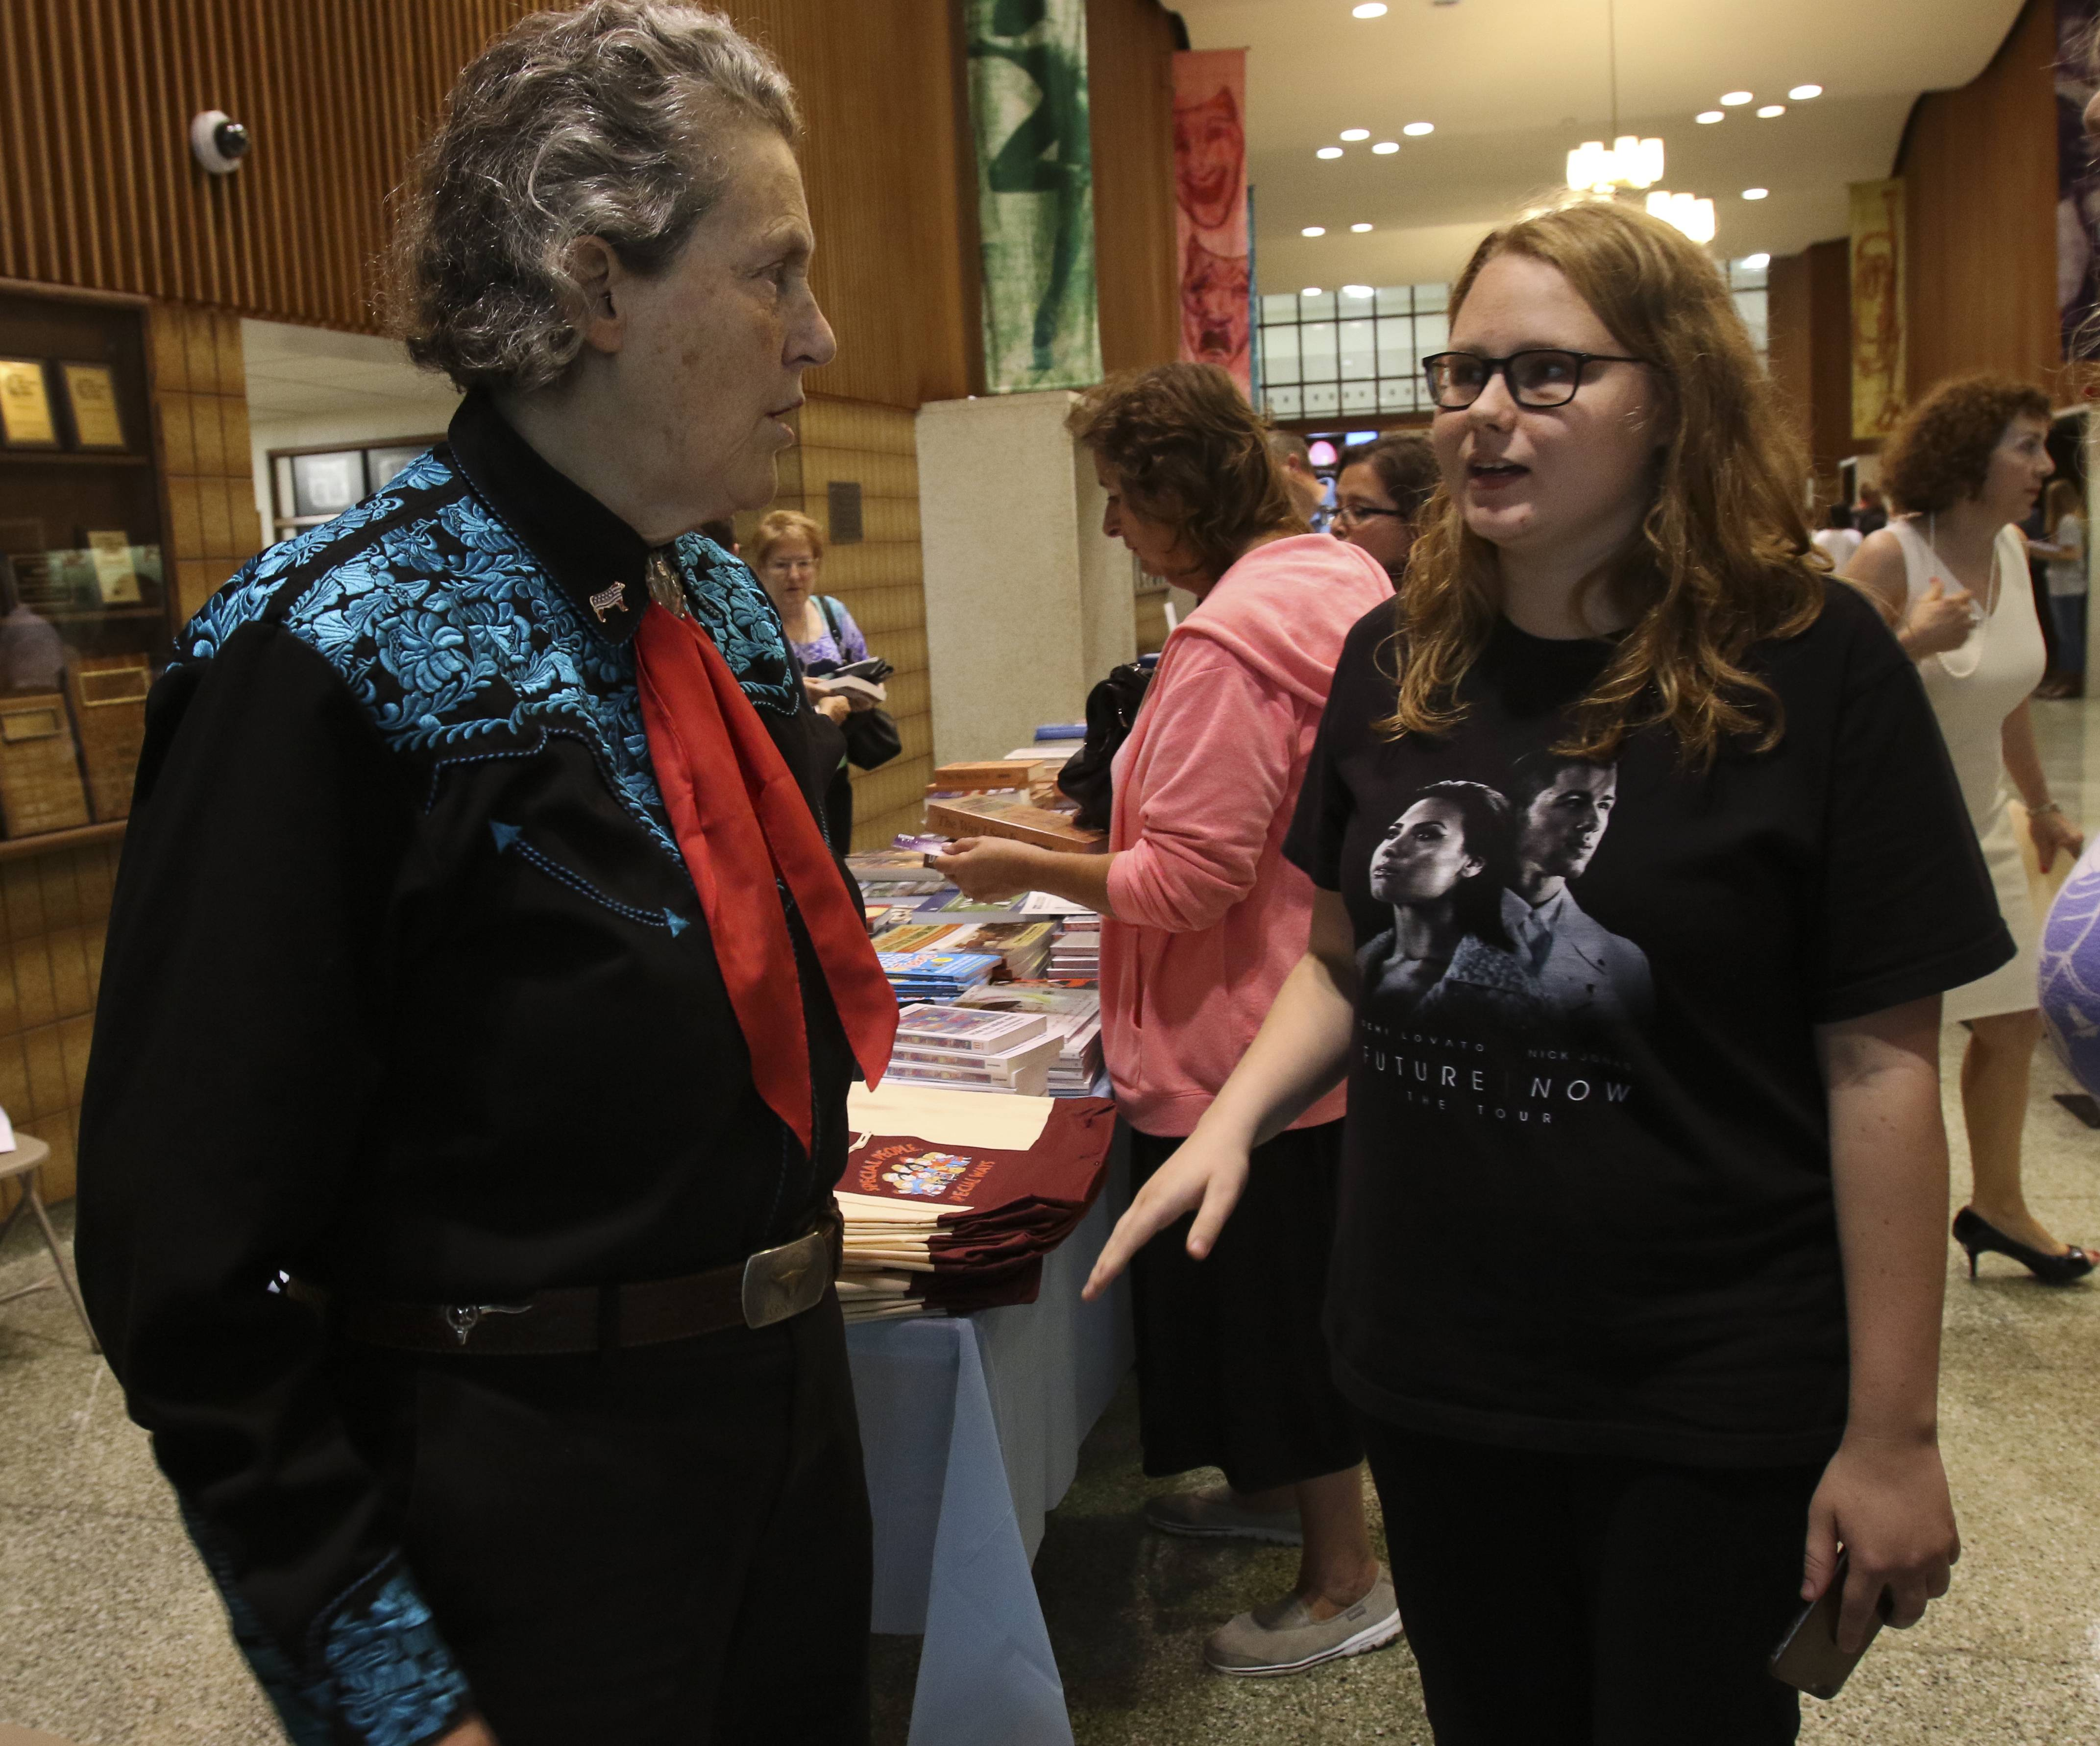 Bridget Van Pettten, a senior at Glenbard East, right, meets Temple Grandin before her talk on the autistic mind as part of the Glenbard Parent Series Wednesday afternoon. Bridget has autism and considers Grandin an inspiration.